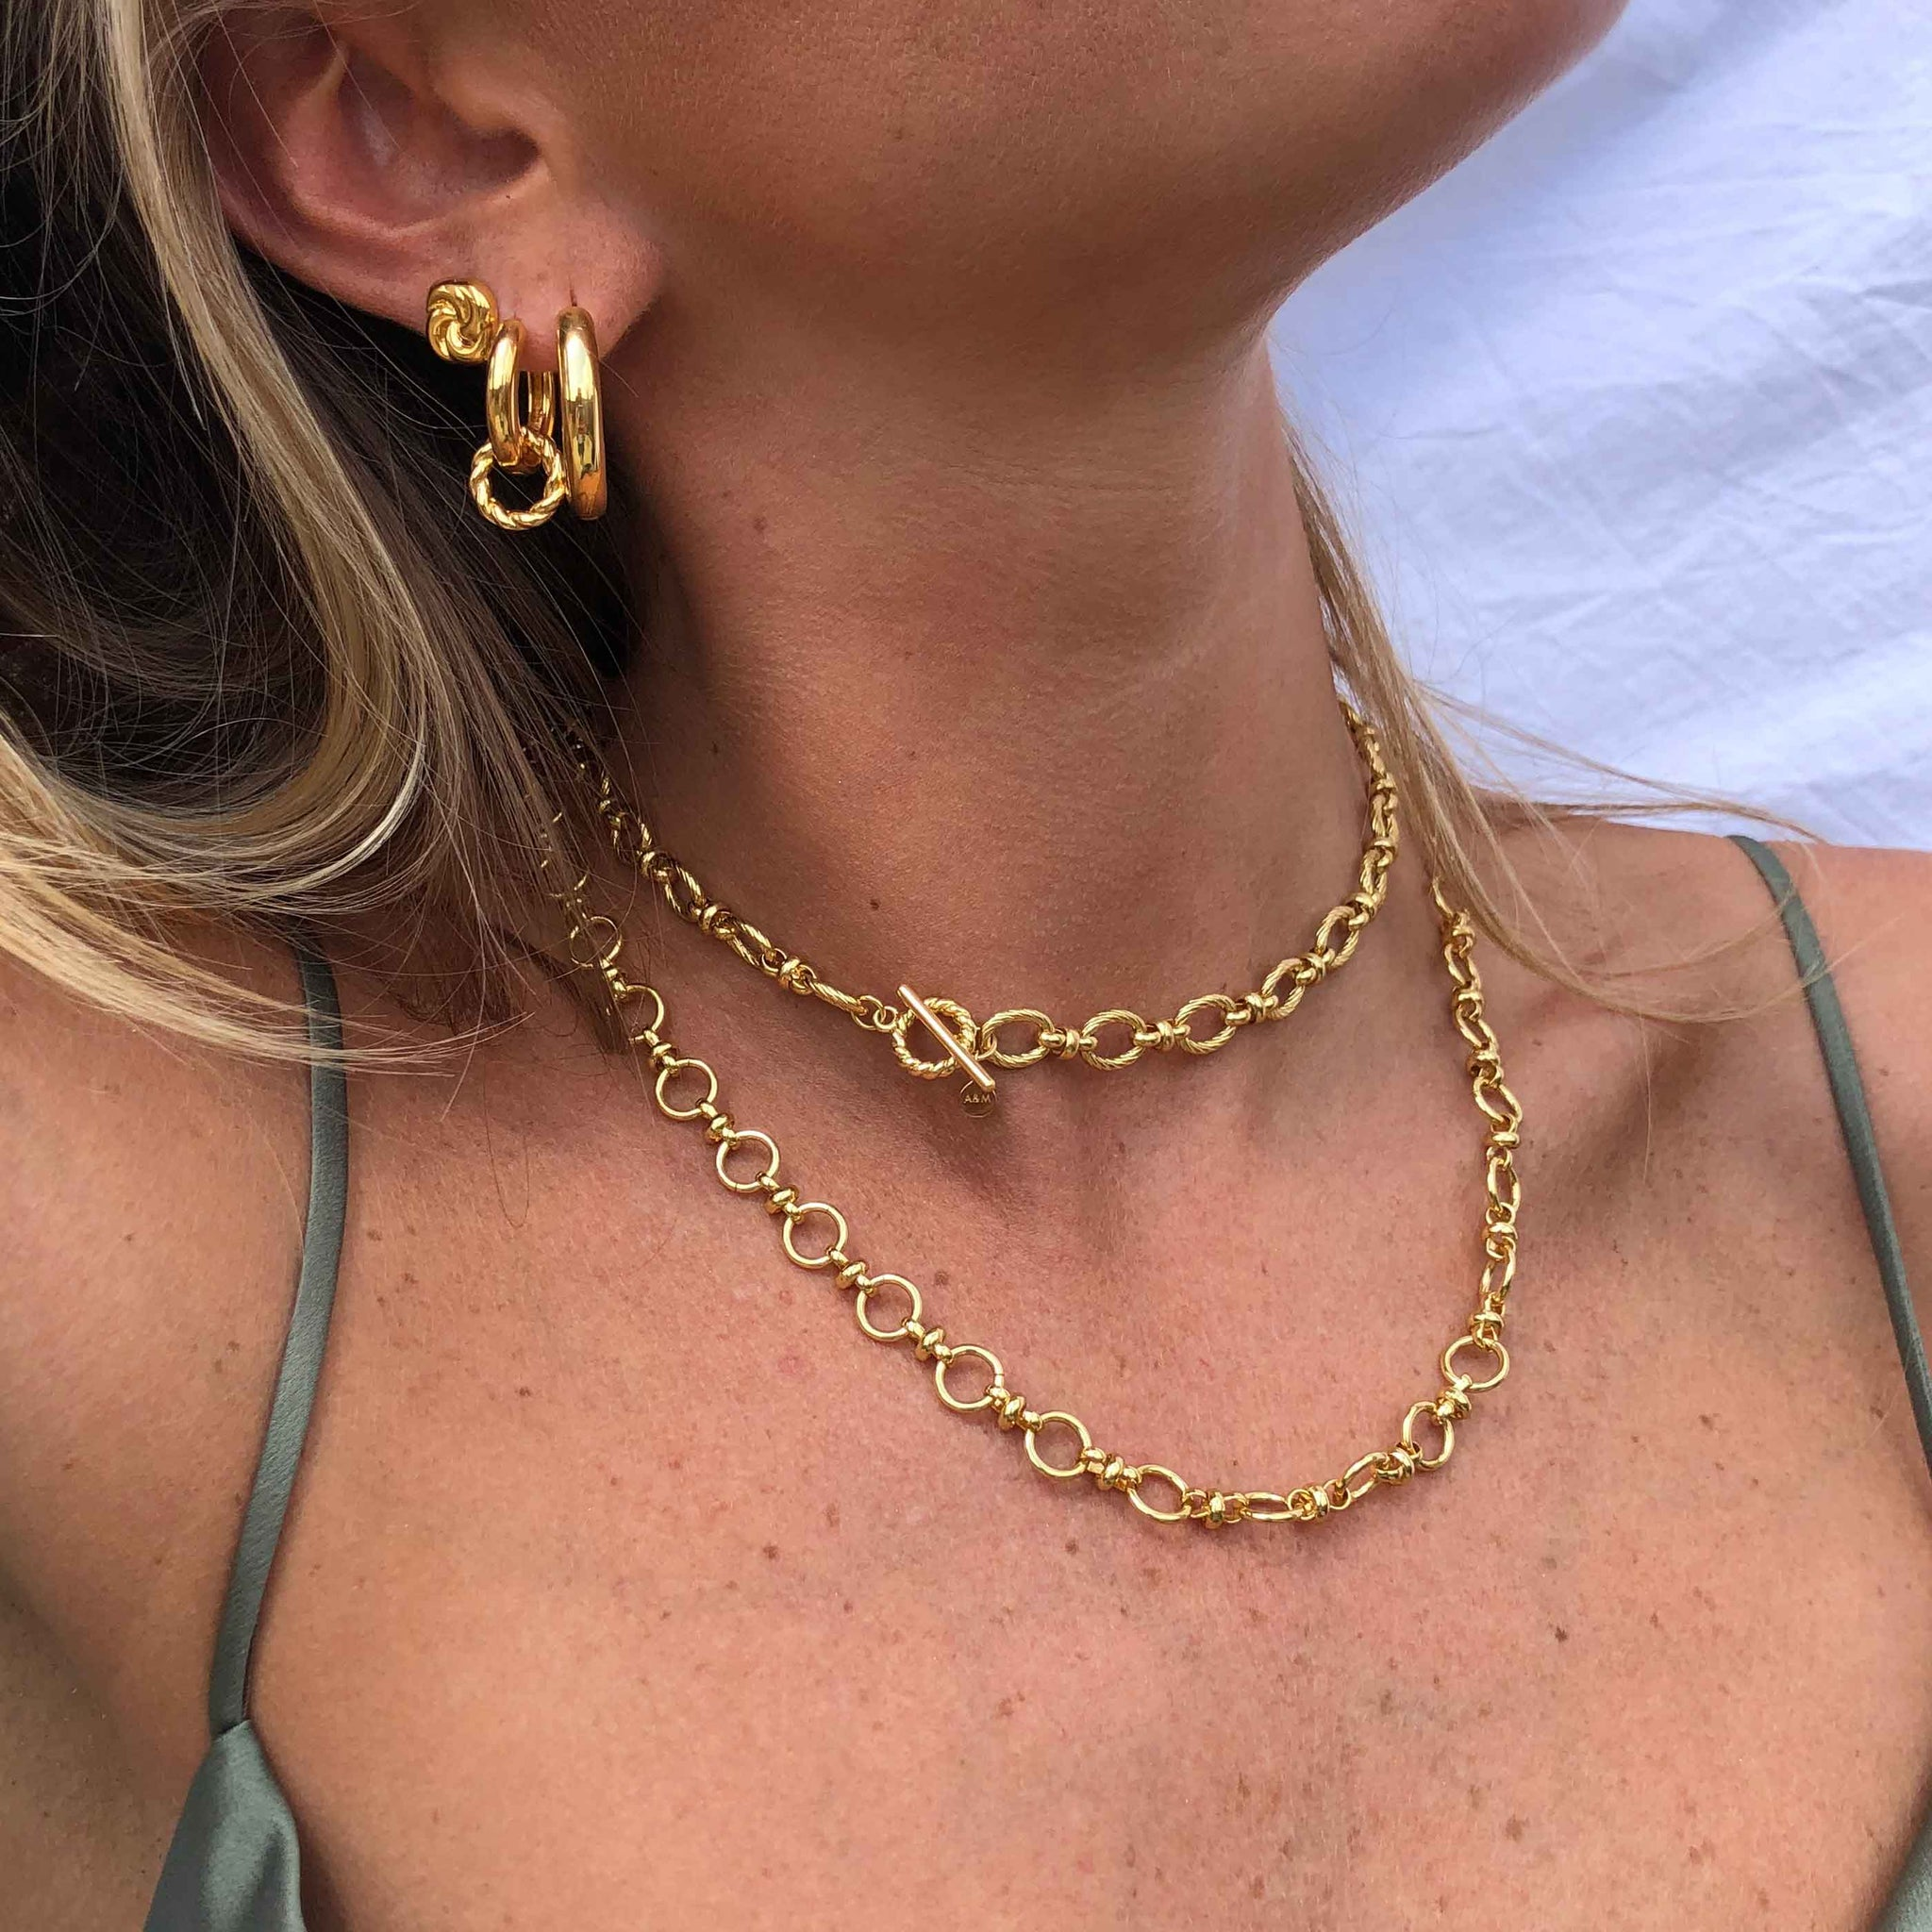 Model wearing gold chunky chain necklaces